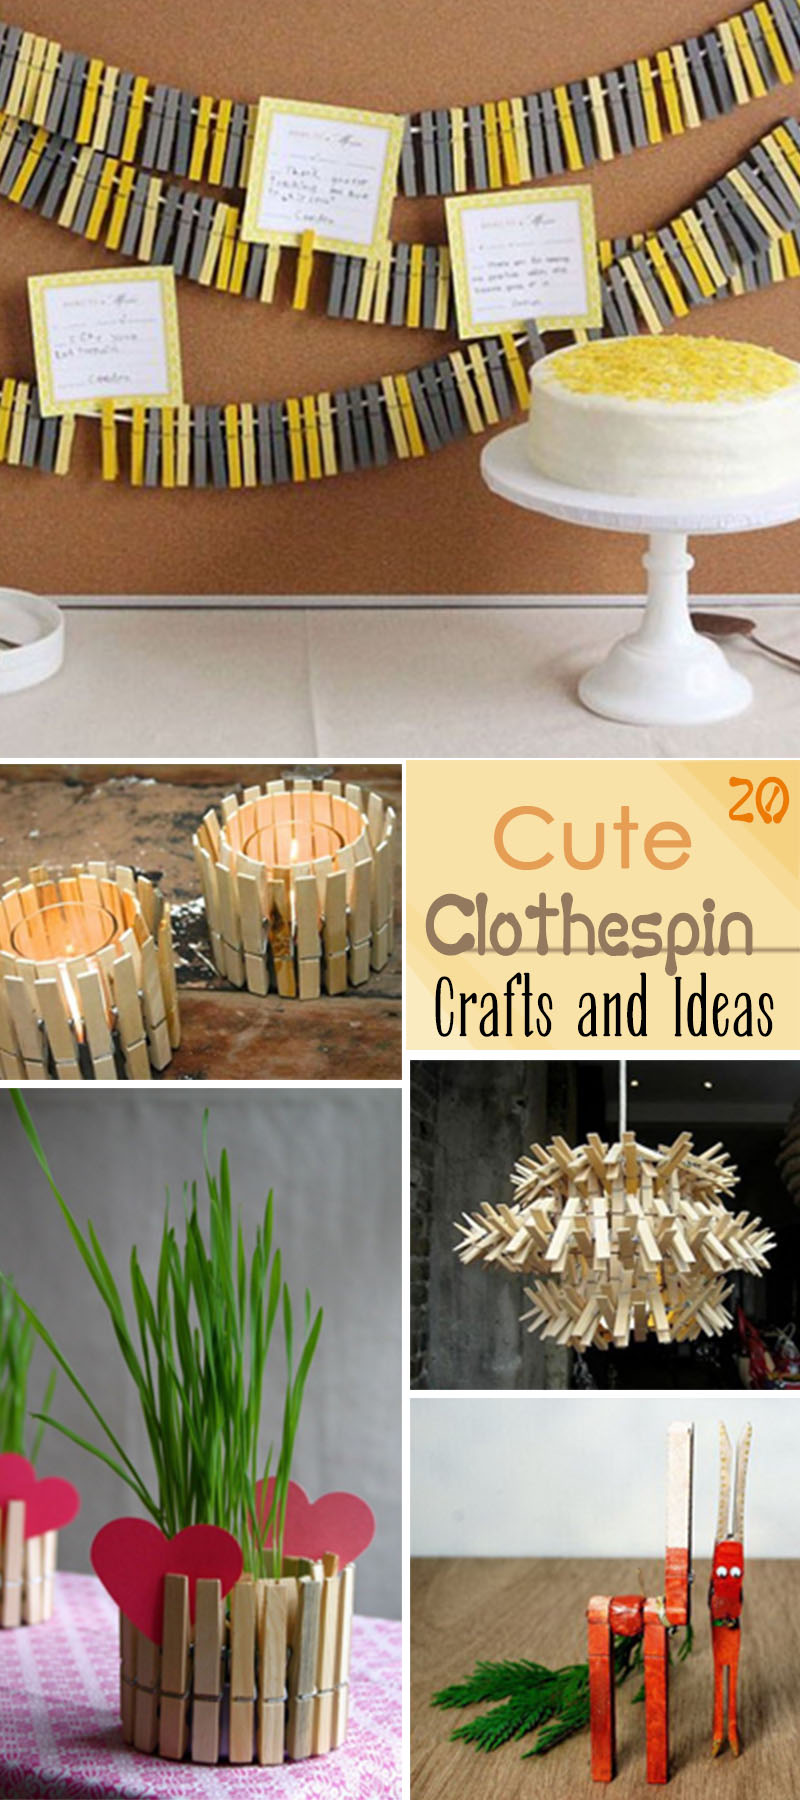 Cute Clothespin Crafts and Ideas!